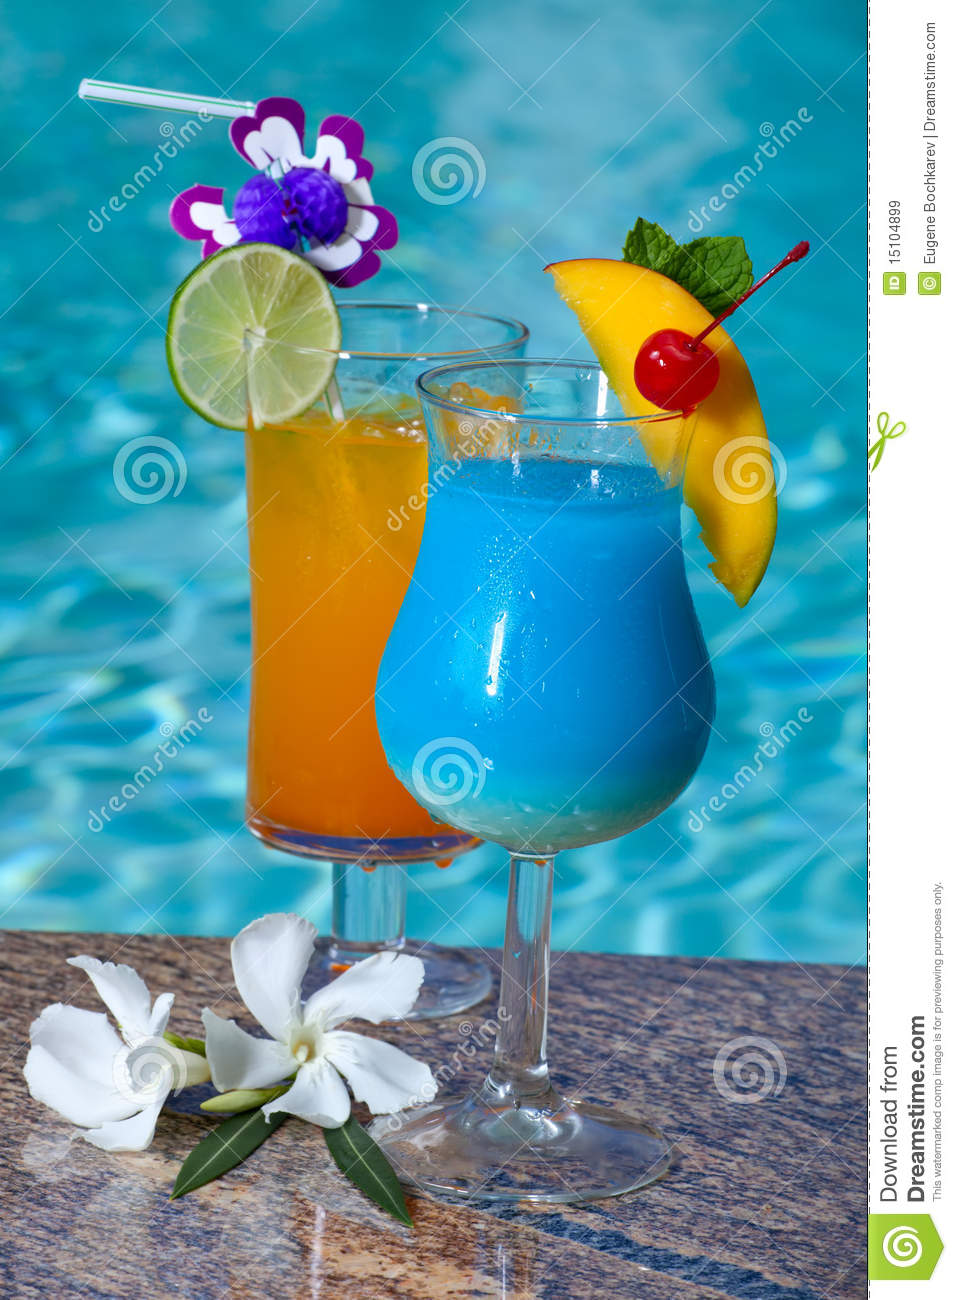 Poolside Cocktails Royalty Free Stock Images - Image: 15104899